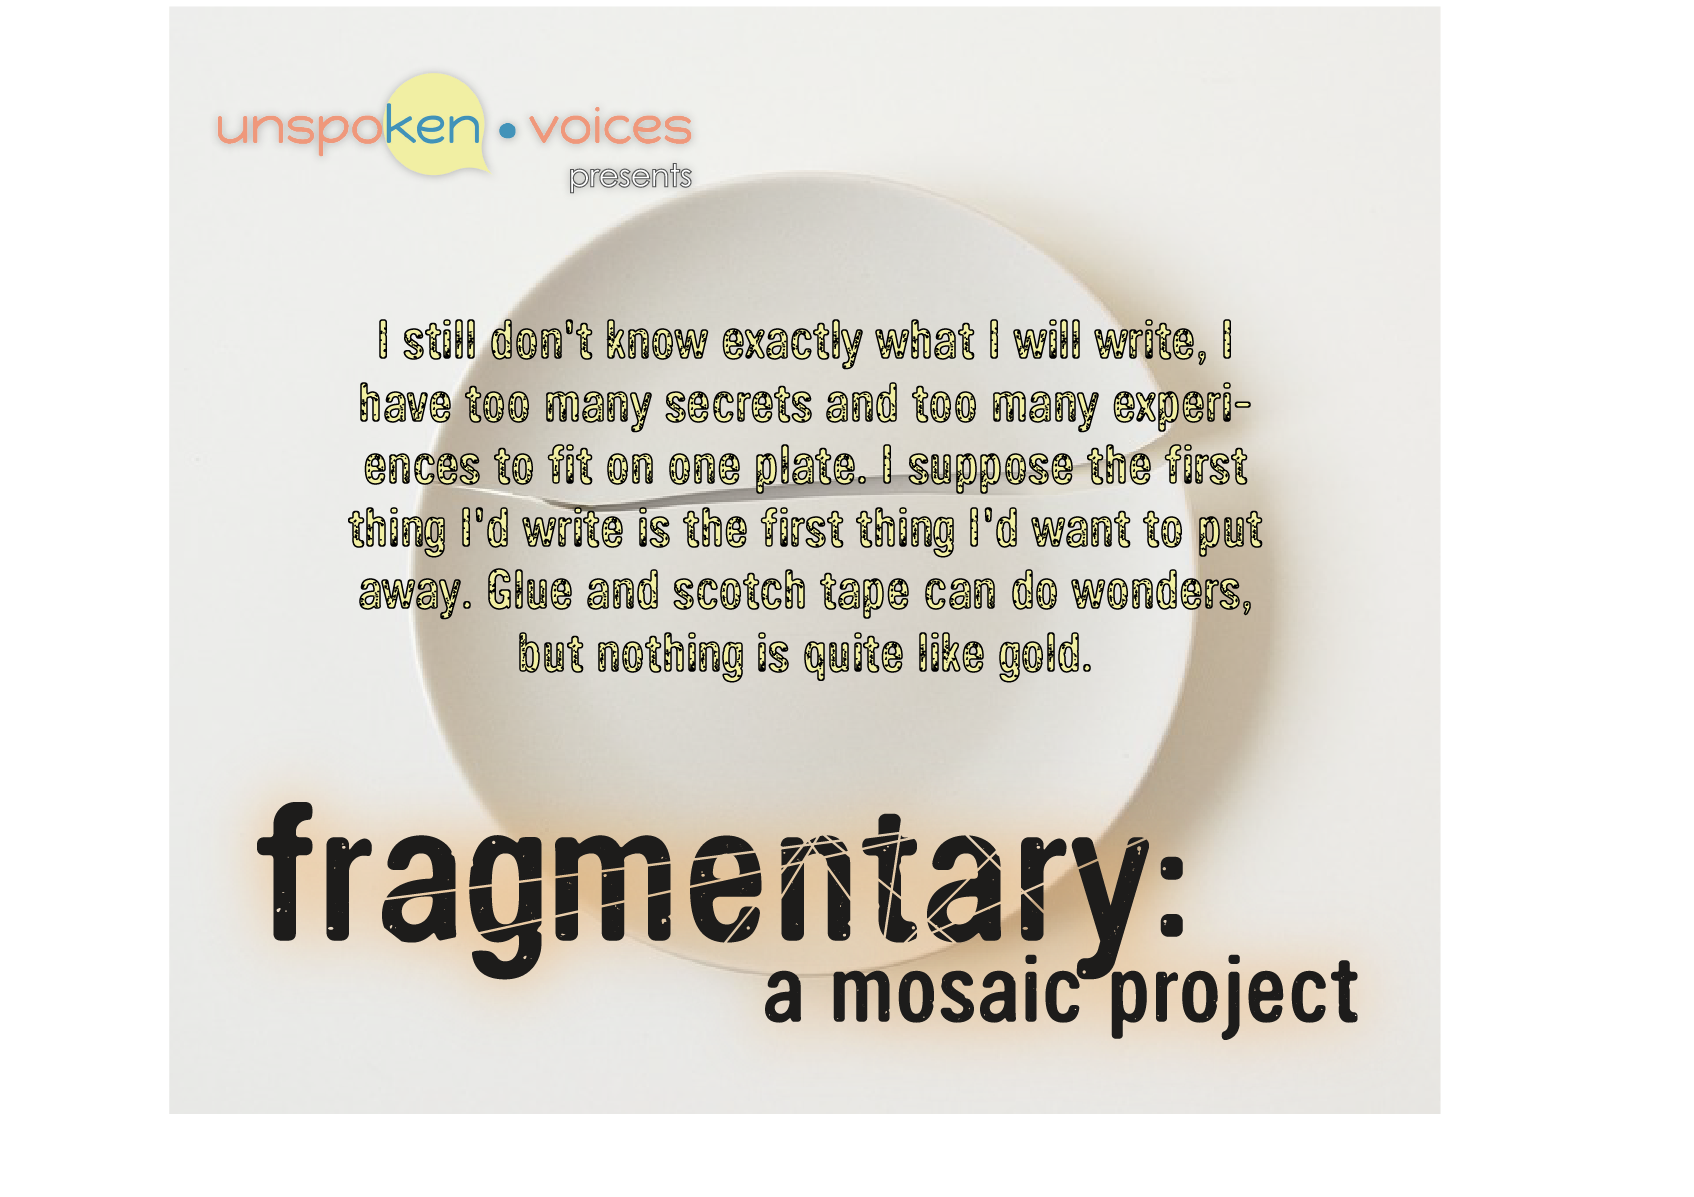 Fragmentary: A Mosaic Project by Unspoken Voices, Post One Image